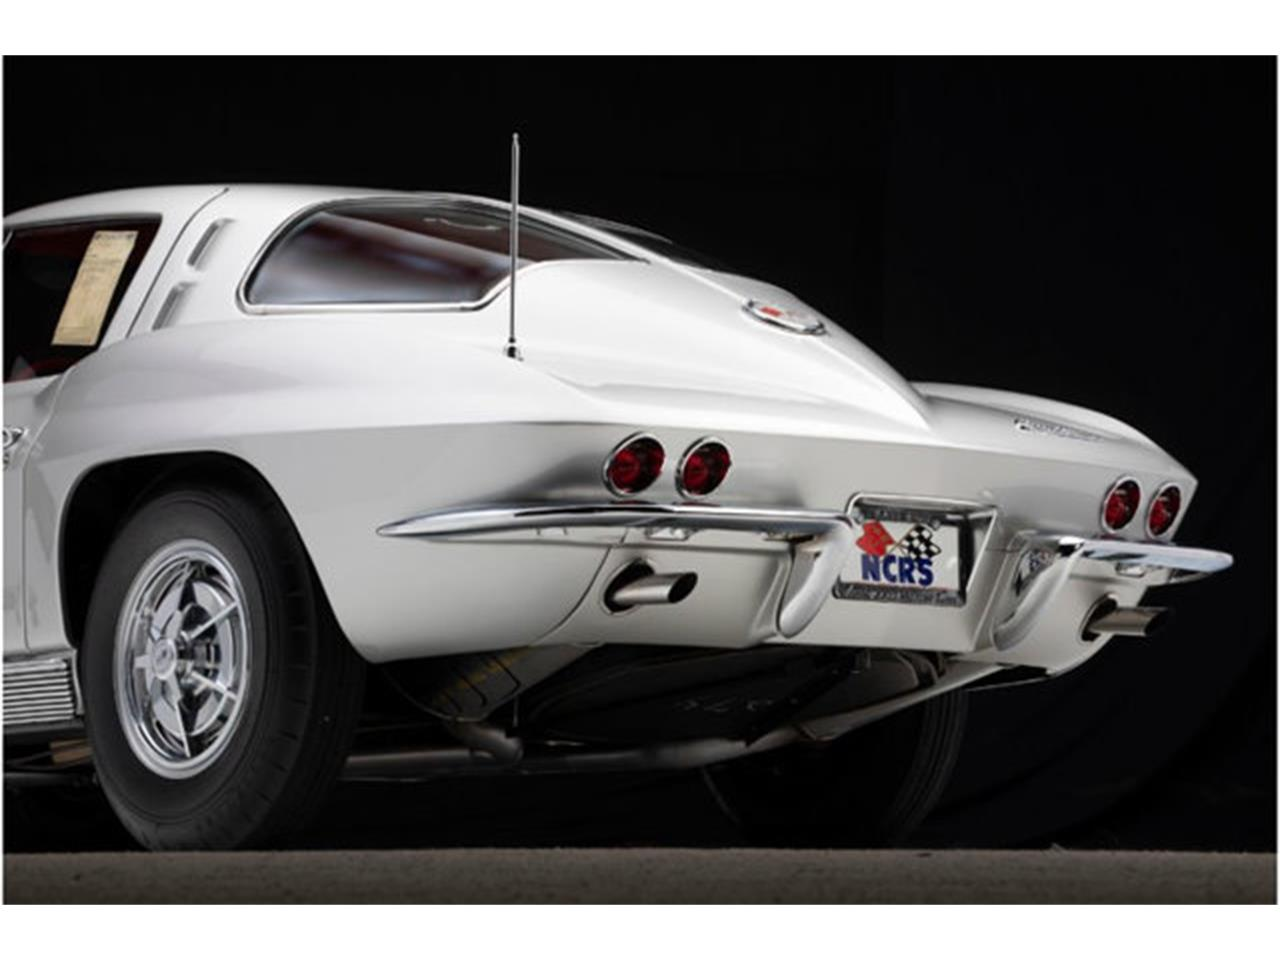 Large Picture of Classic '63 Chevrolet Corvette located in Clifton Park New York Auction Vehicle Offered by Prestige Motor Car Co. - QOY3